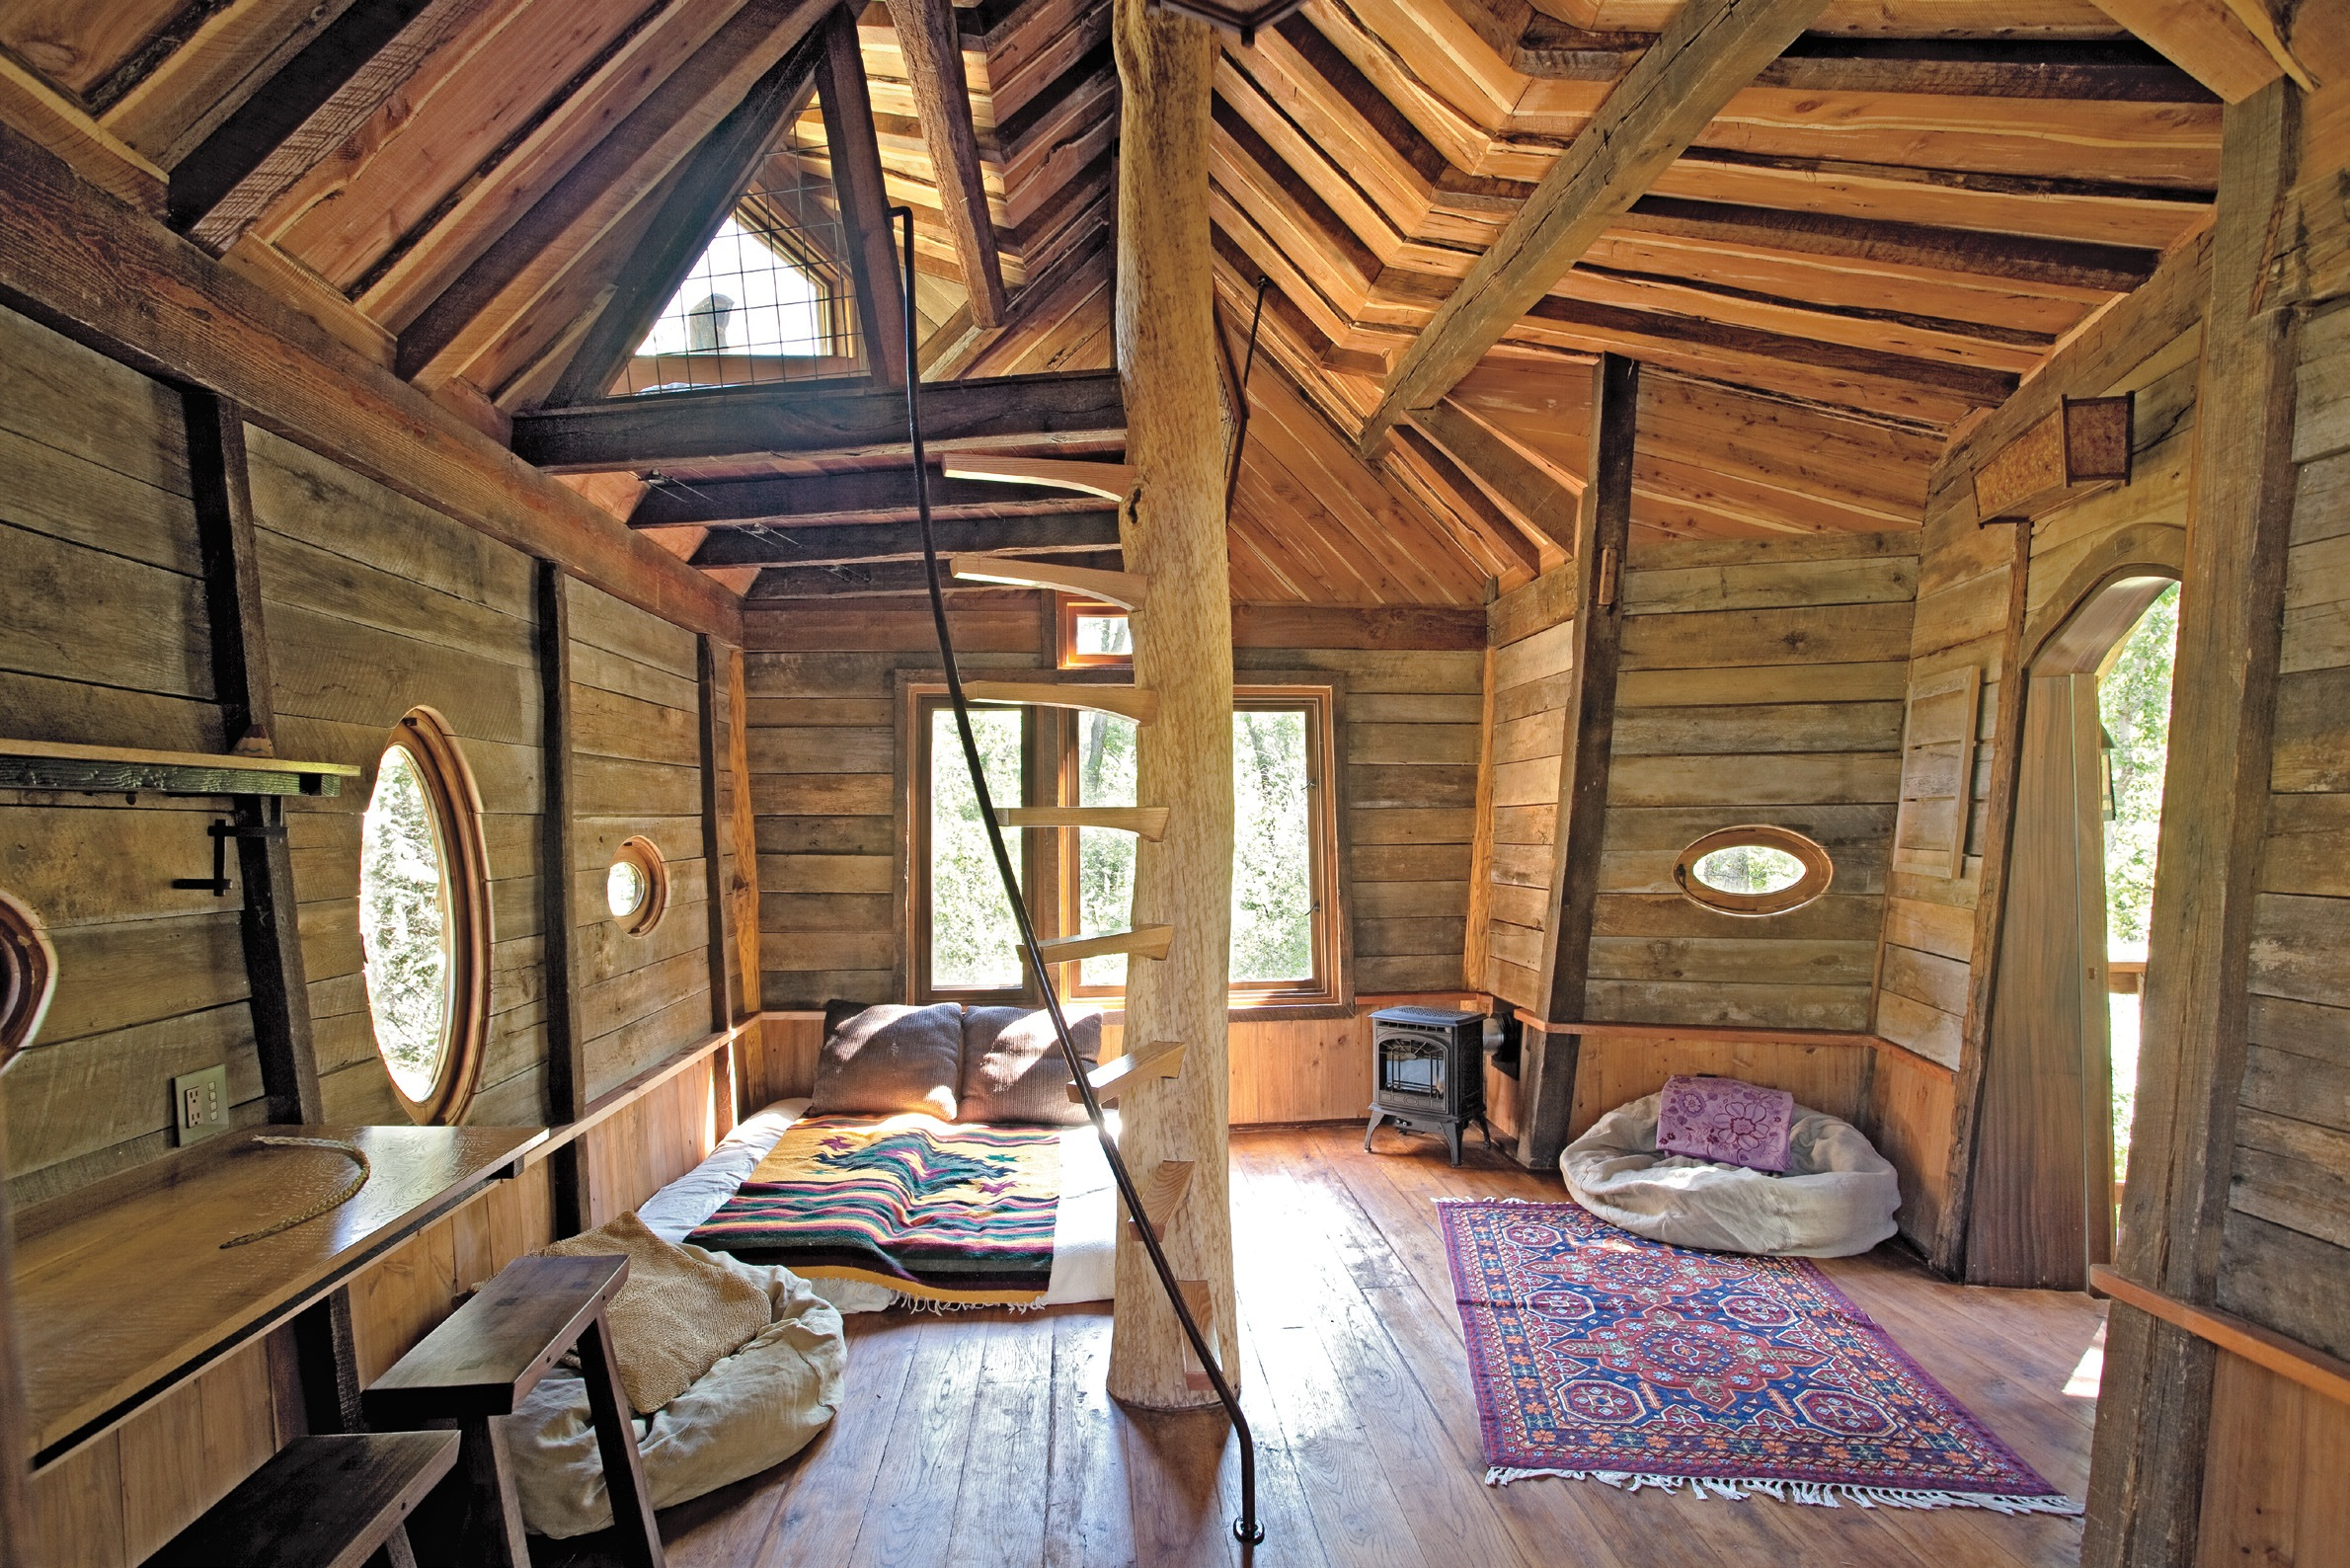 Tiny Homes By Lloyd Kahn Exclusive Image Gallery